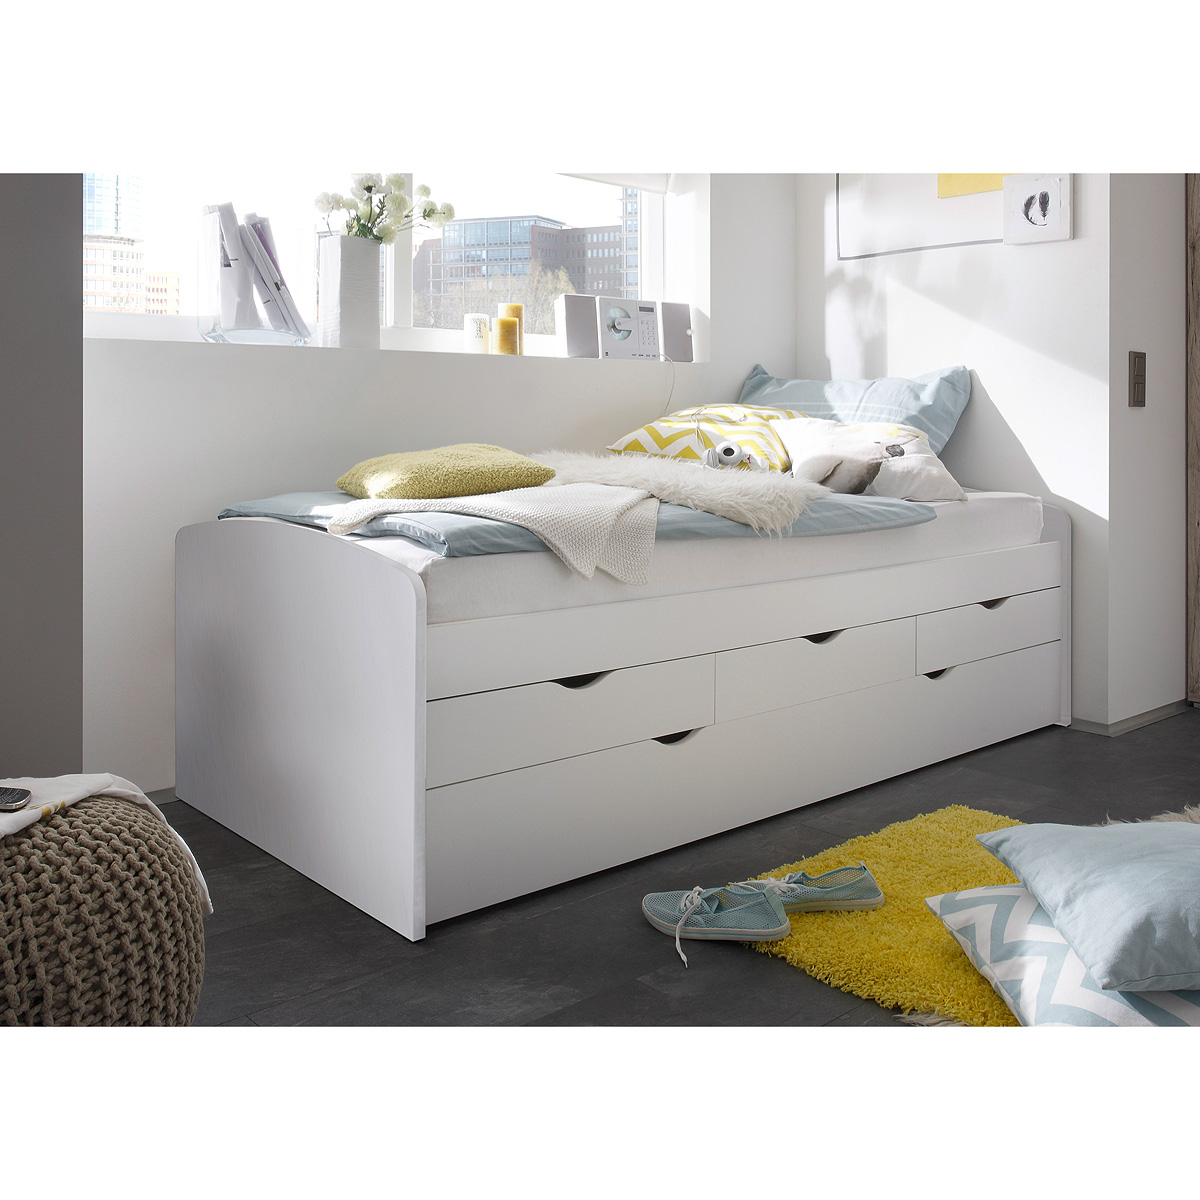 kojenbett nessi bett hochbett wei sandeiche eiche sonoma 2 liegefl chen 90x200 ebay. Black Bedroom Furniture Sets. Home Design Ideas